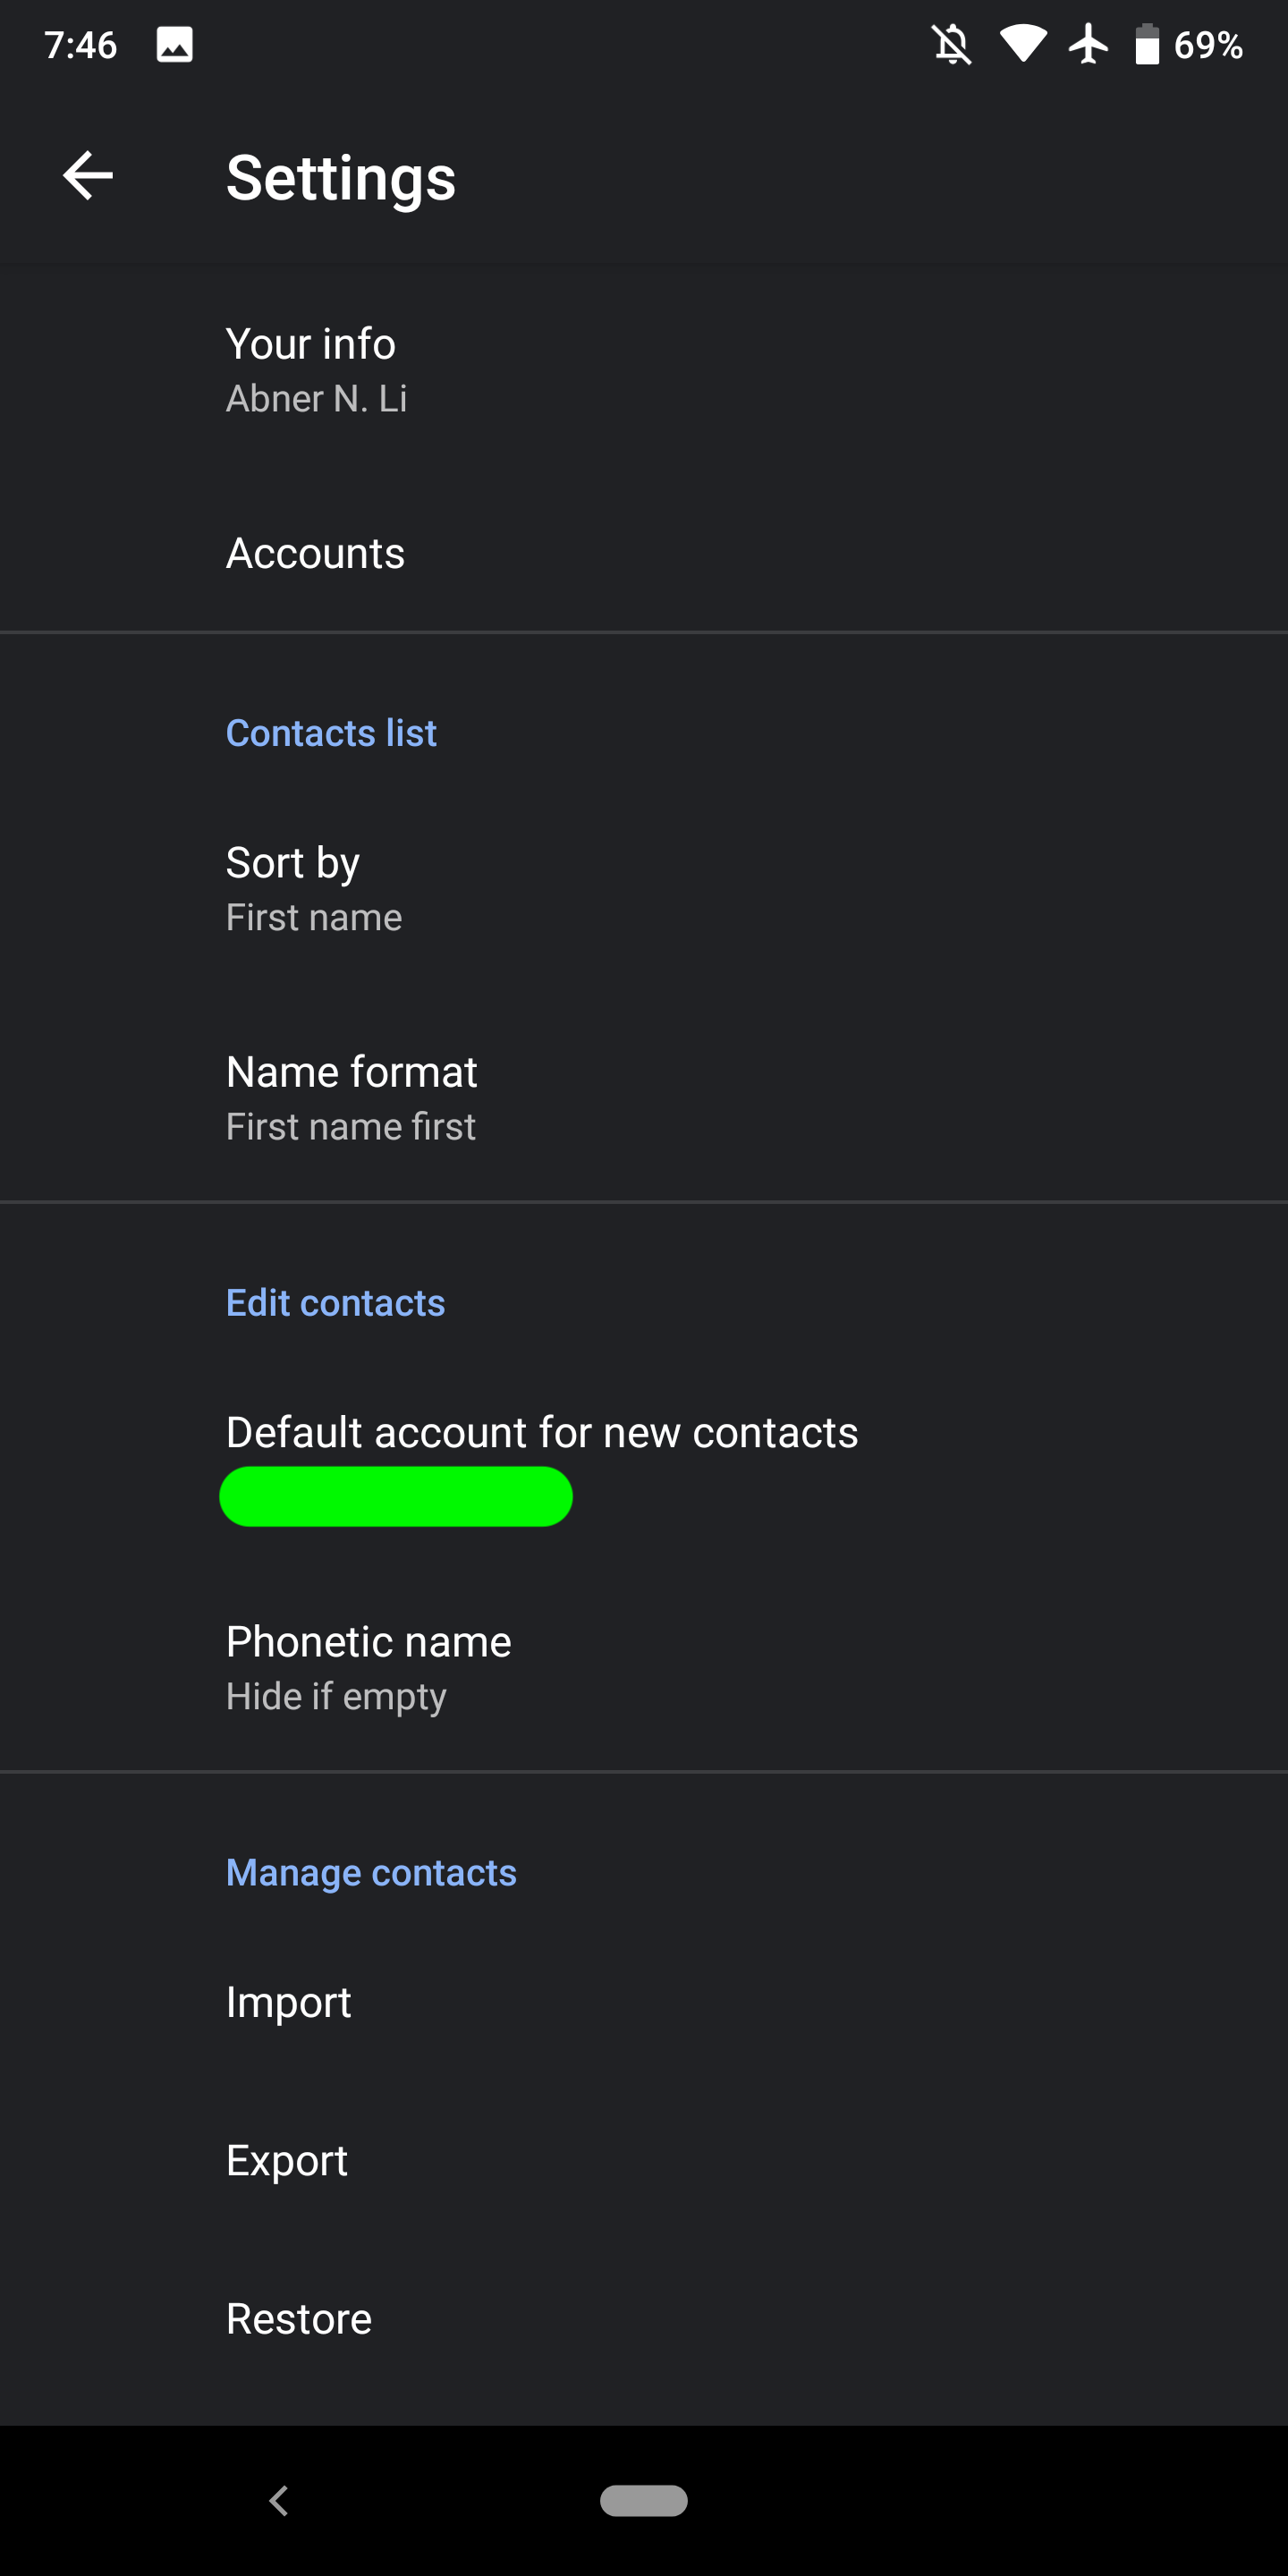 how to edit contacts in gmail account